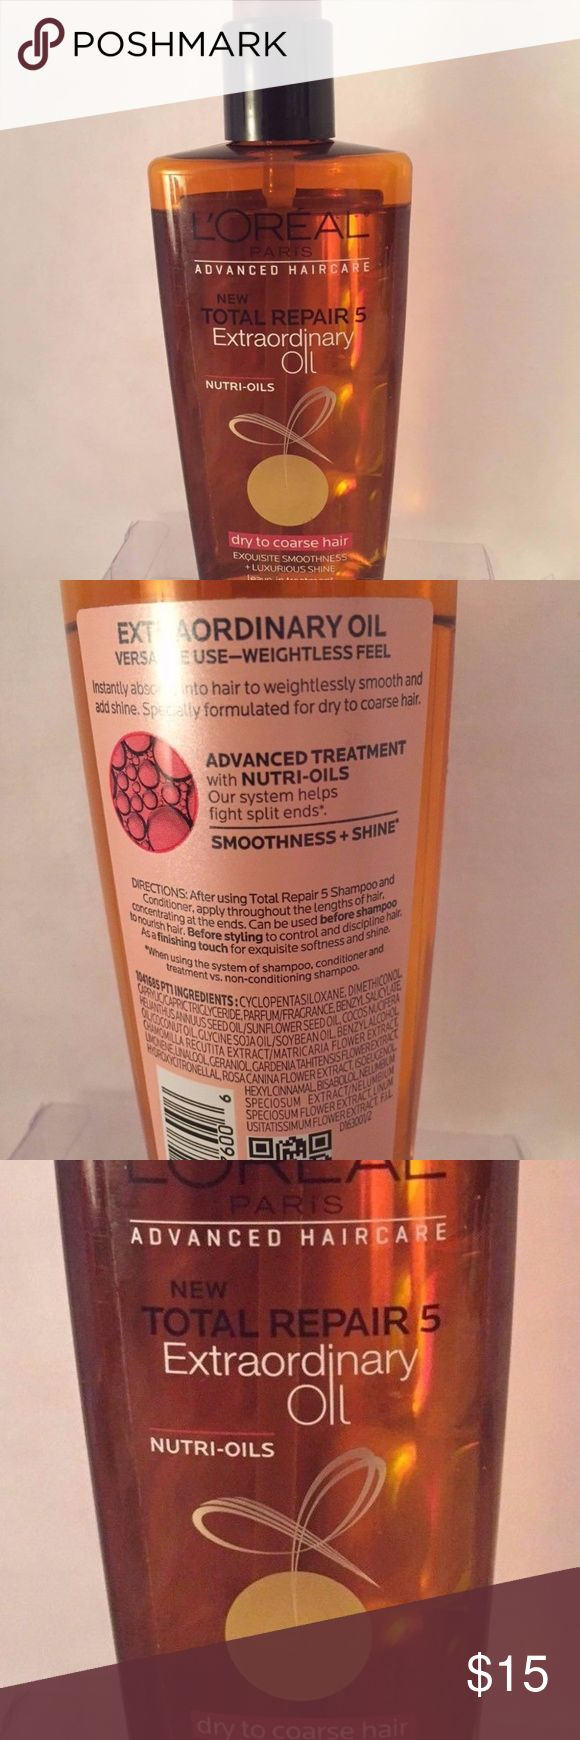 LOREAL Total Repair 5 Extraordinary Oil LOREAL Total Repair 5 Extraordinary Oil with Nutri-oils. Leave-in treatment. Treats dry to coarse hair to restore condition. 3.4 ounces / 100ml Full Size LOREAL Makeup